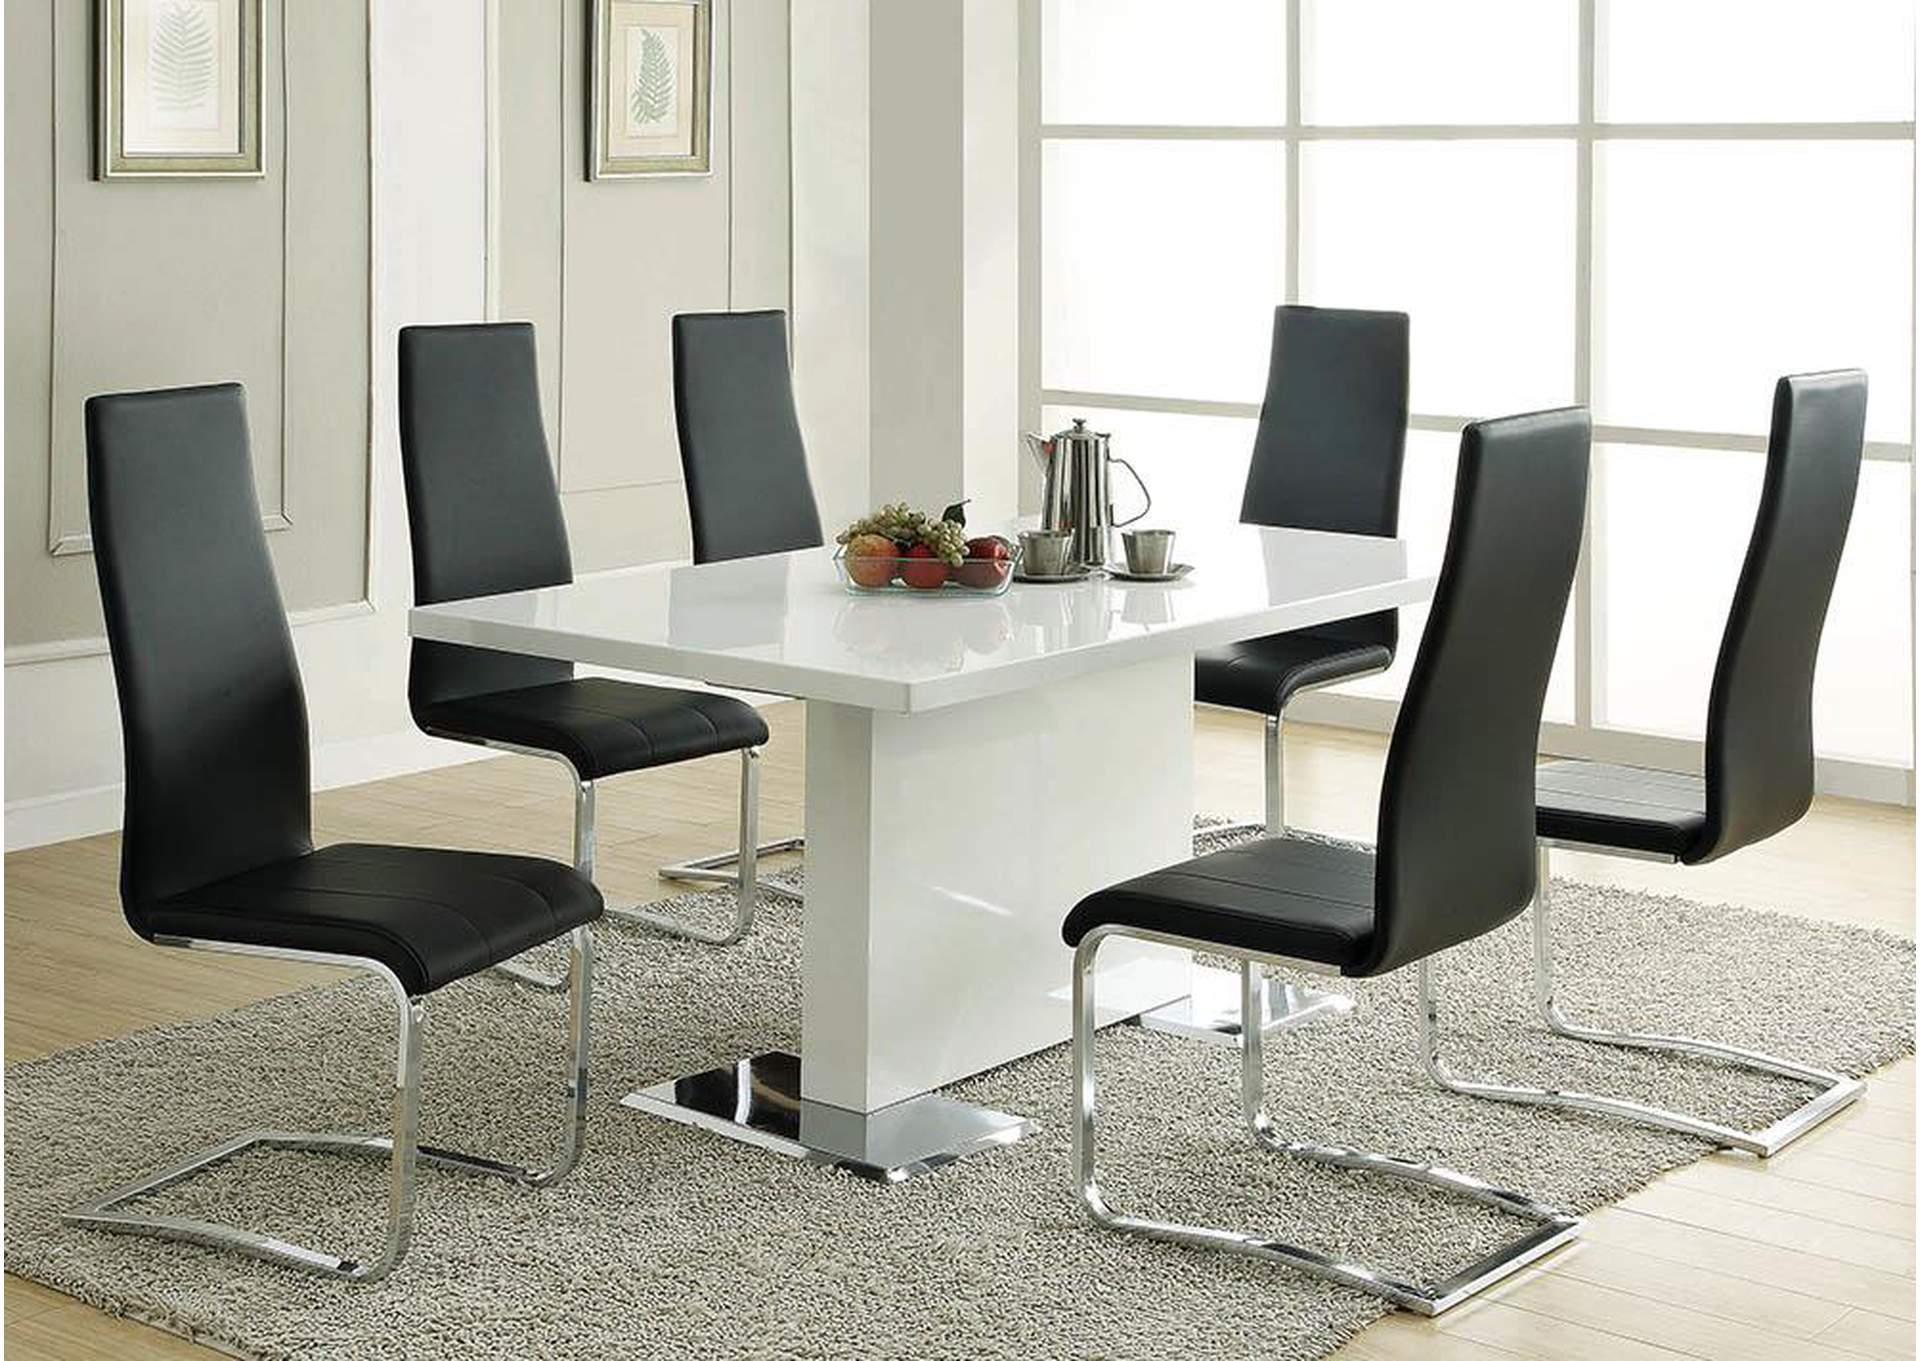 White Dining Table With Chrome BaseCoaster Furniture